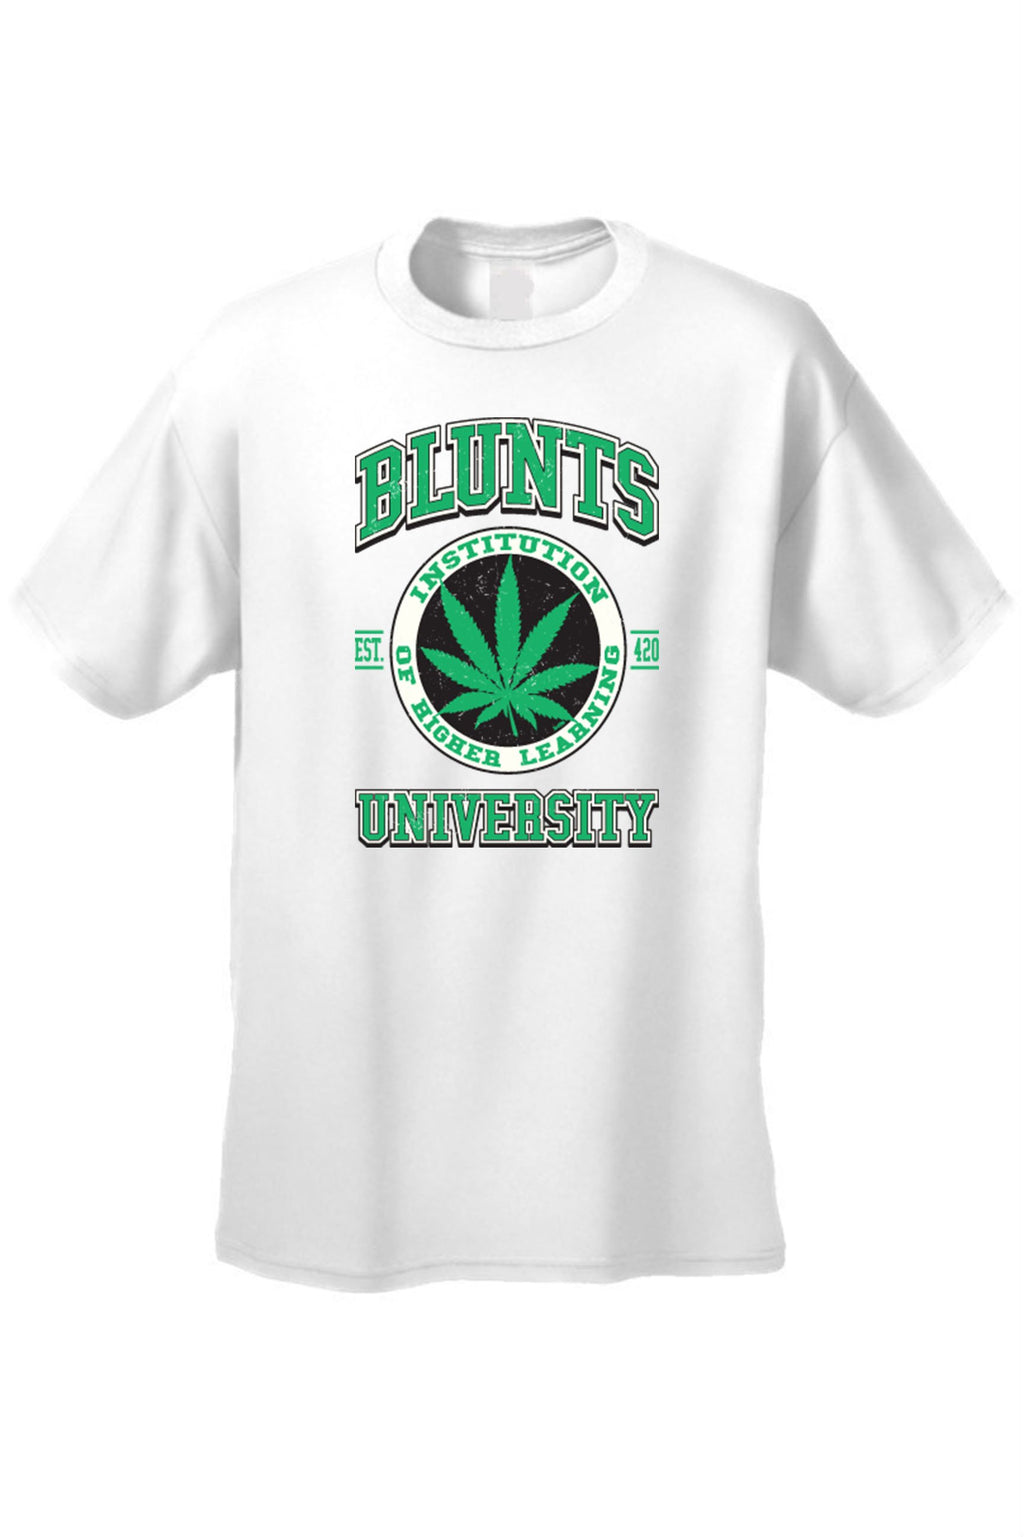 Men's Blunts Institution of Higher Learning University T-Shirt